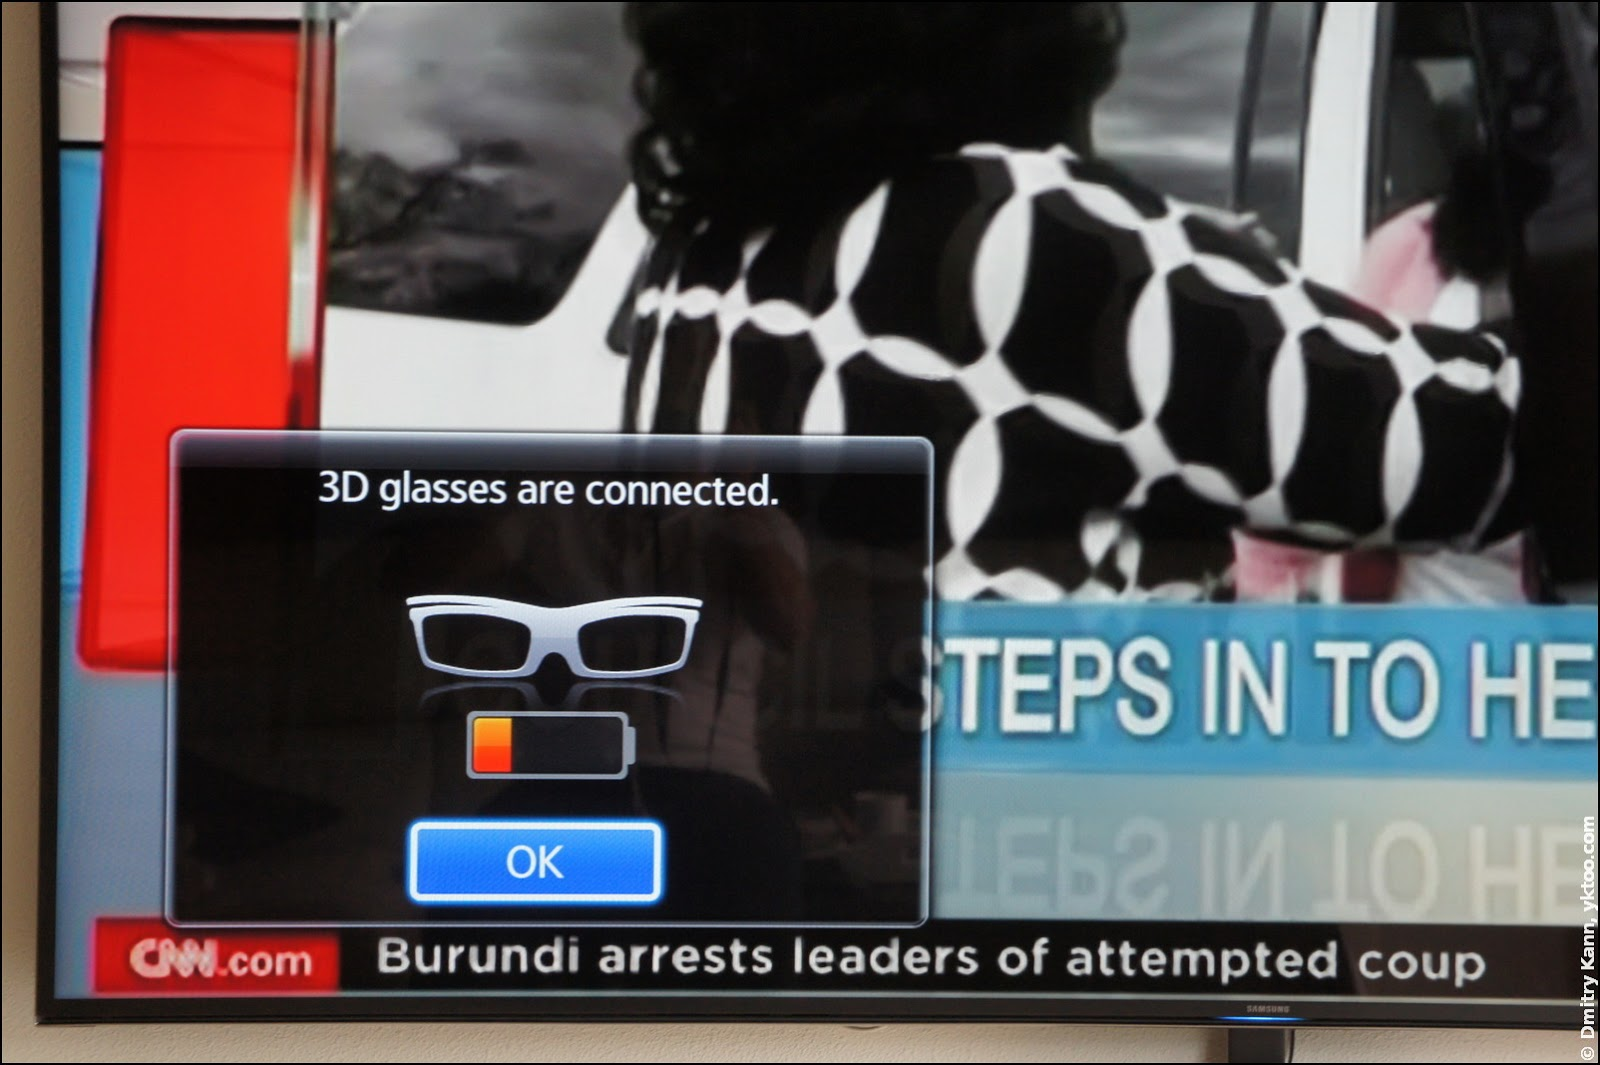 3D glasses connection notification.